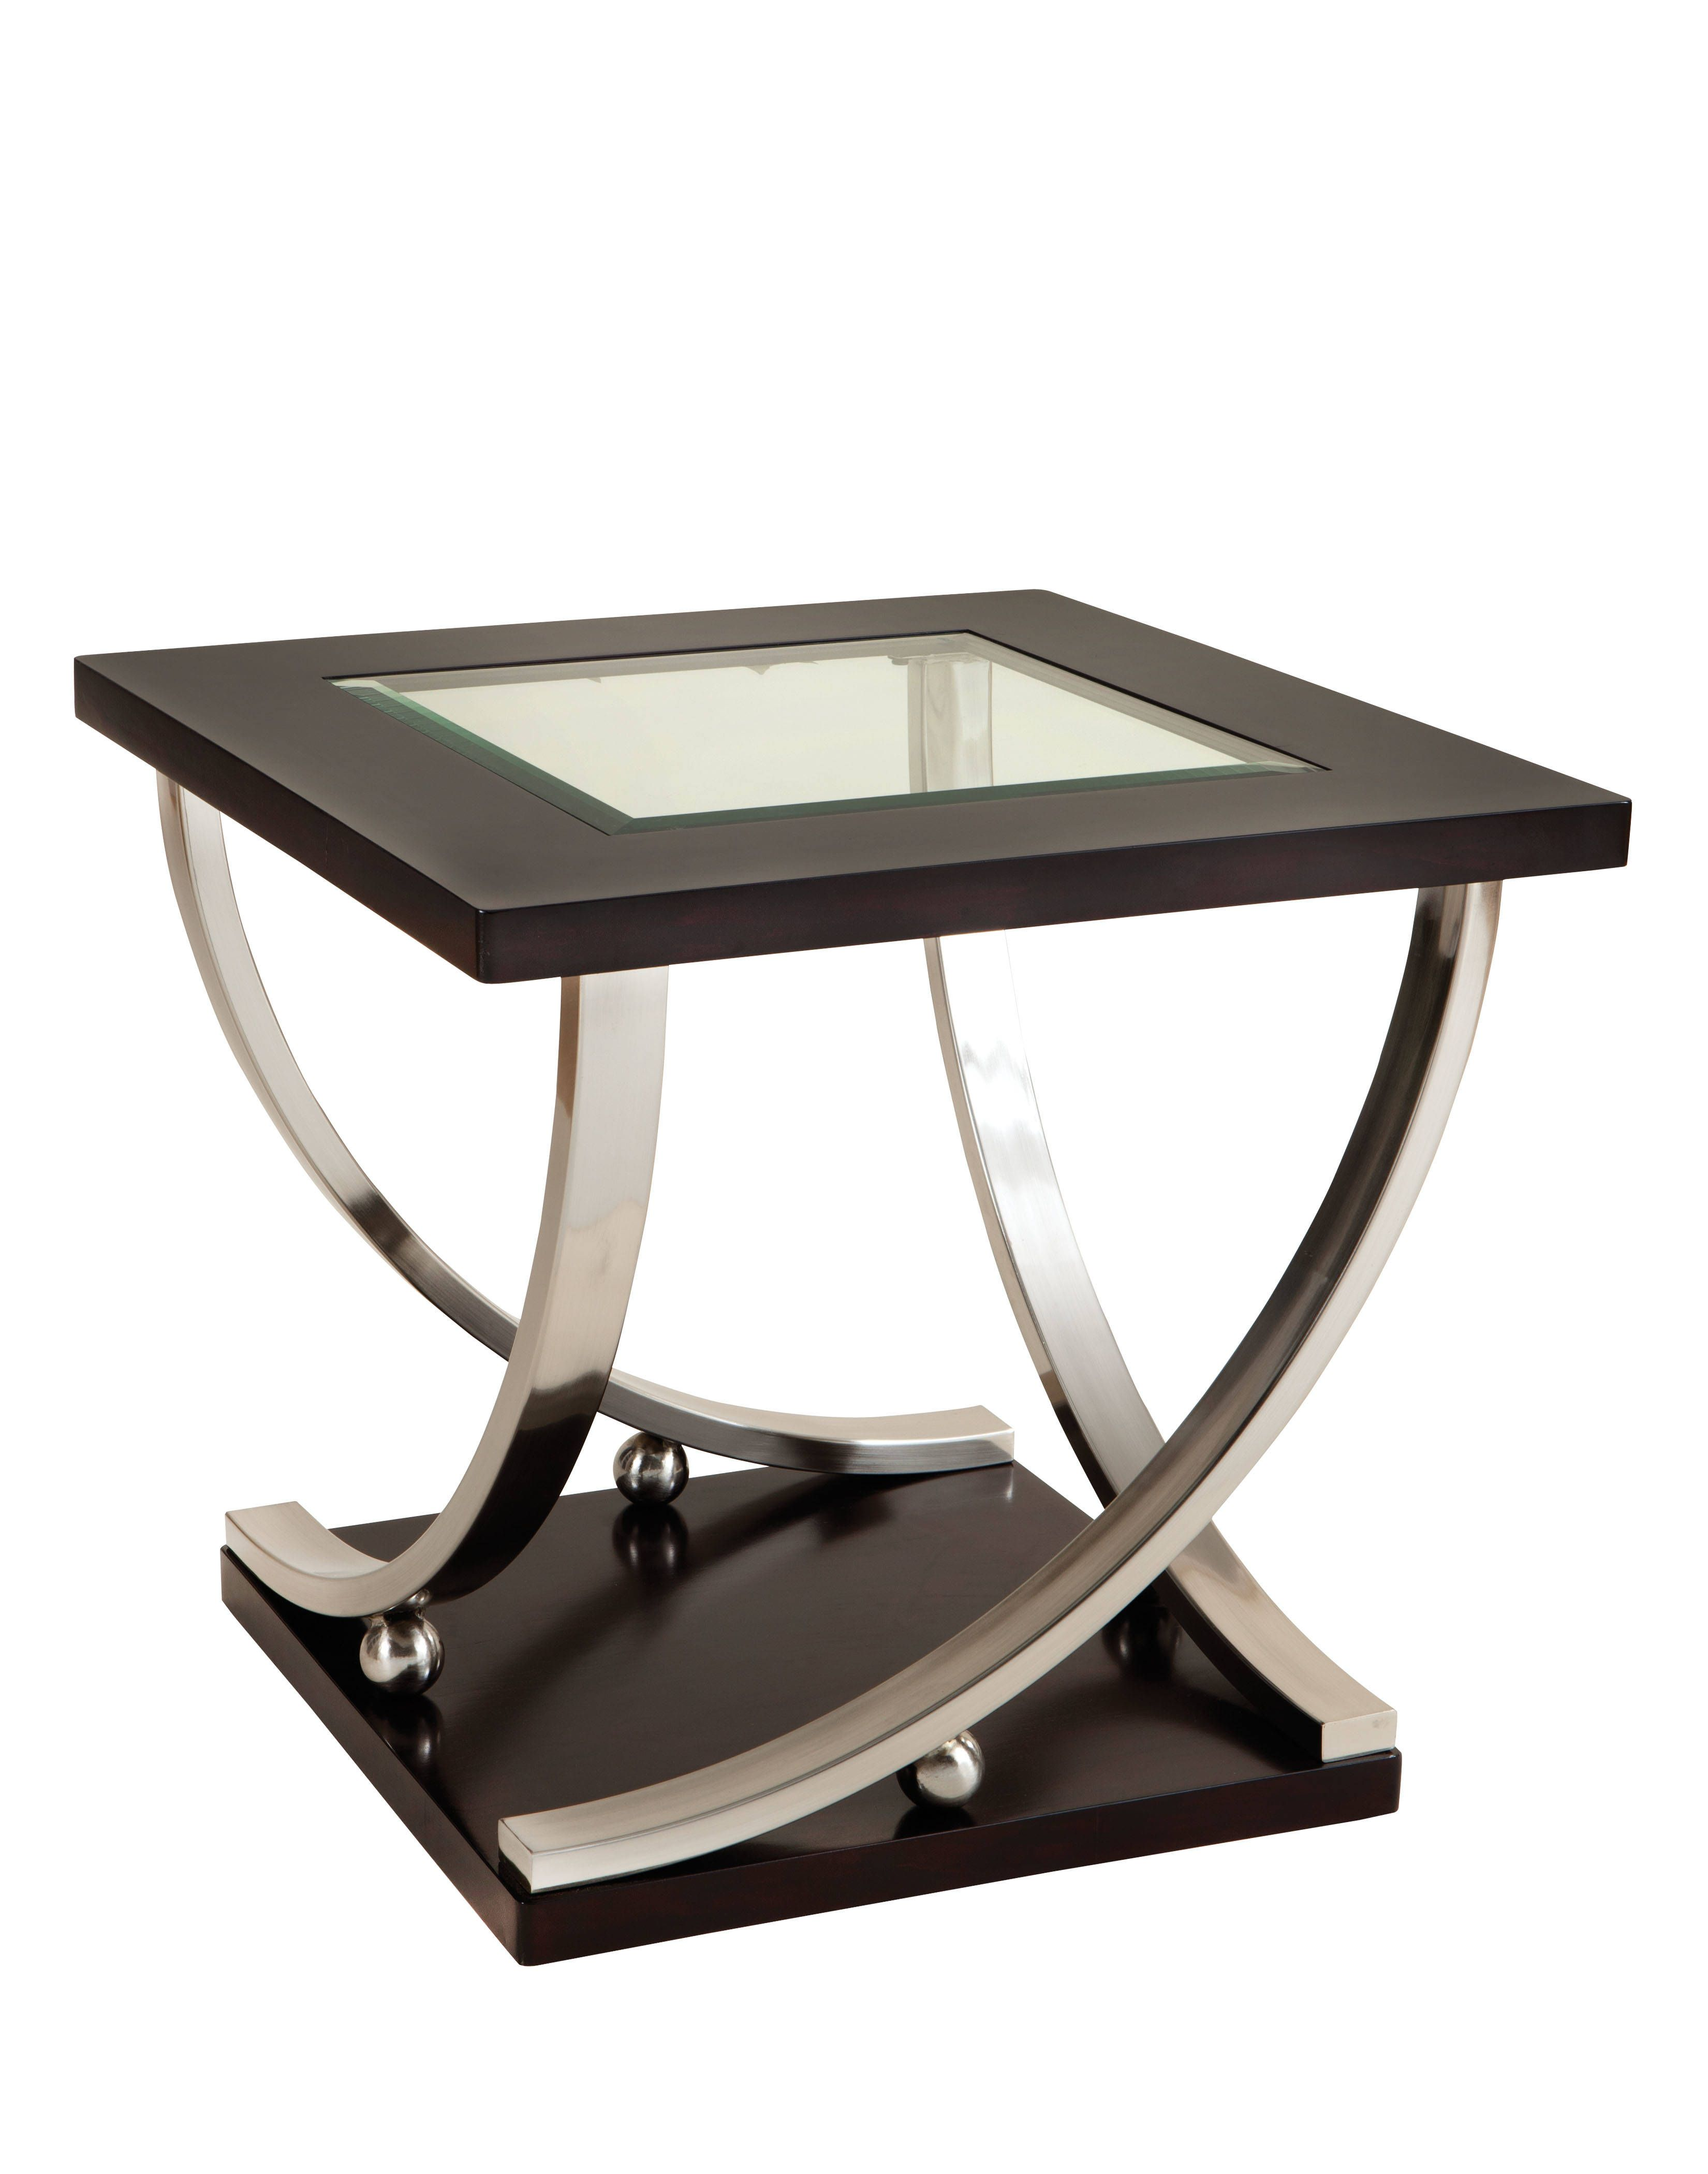 standard furniture melrose glass end table modern metal dark merlot wood ethan allen maple patio and chairs with umbrella signature design what time does homesense close